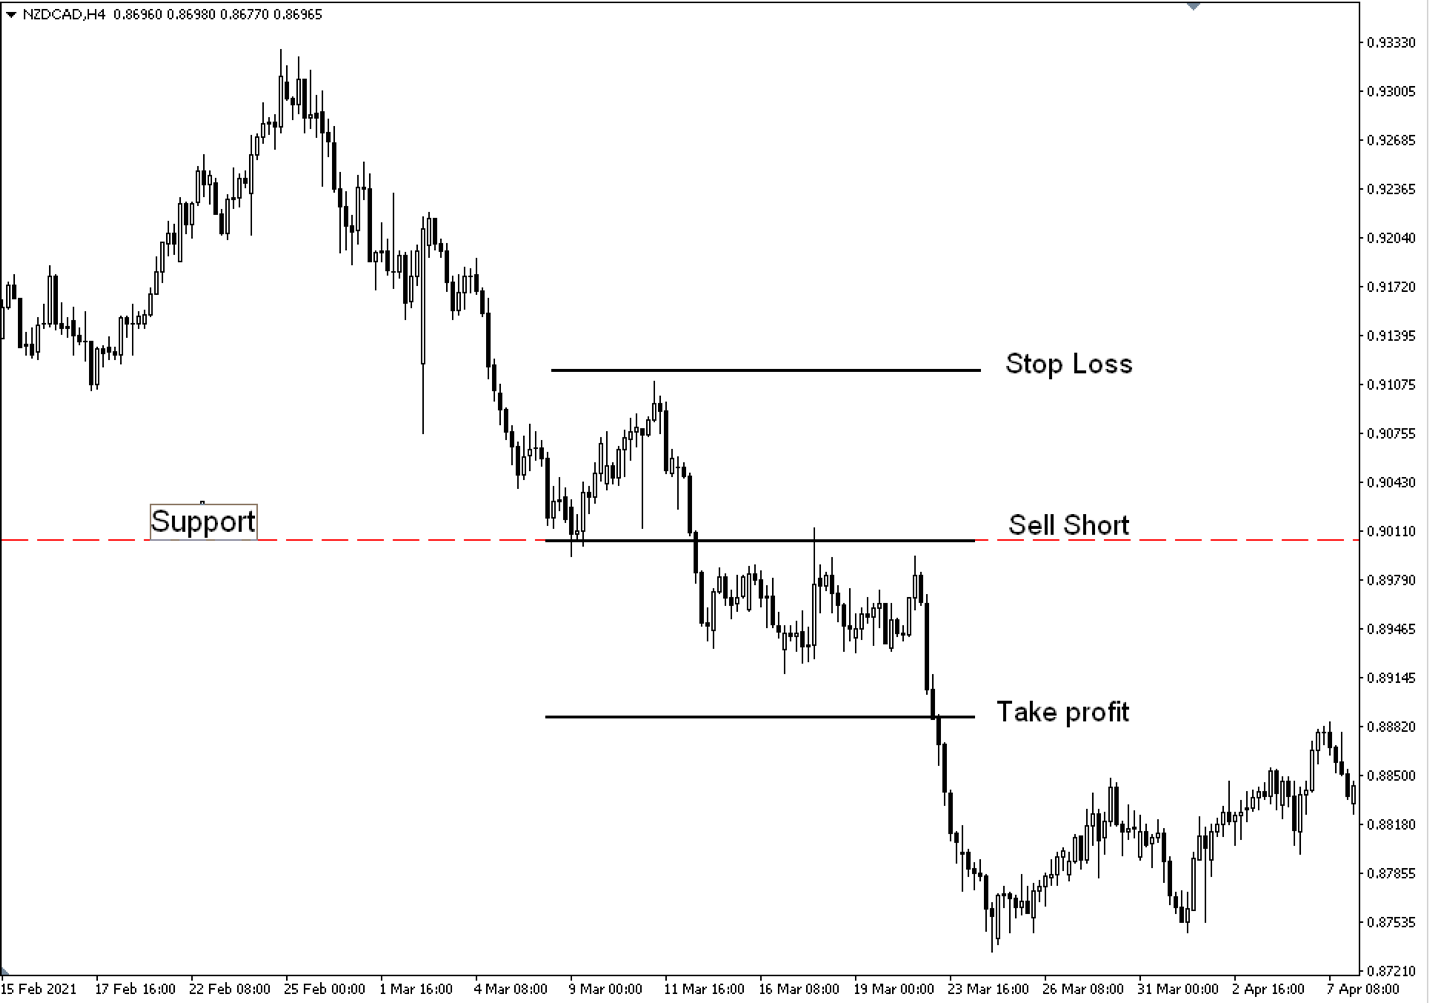 Retest strategy setup for a short trade on a chart